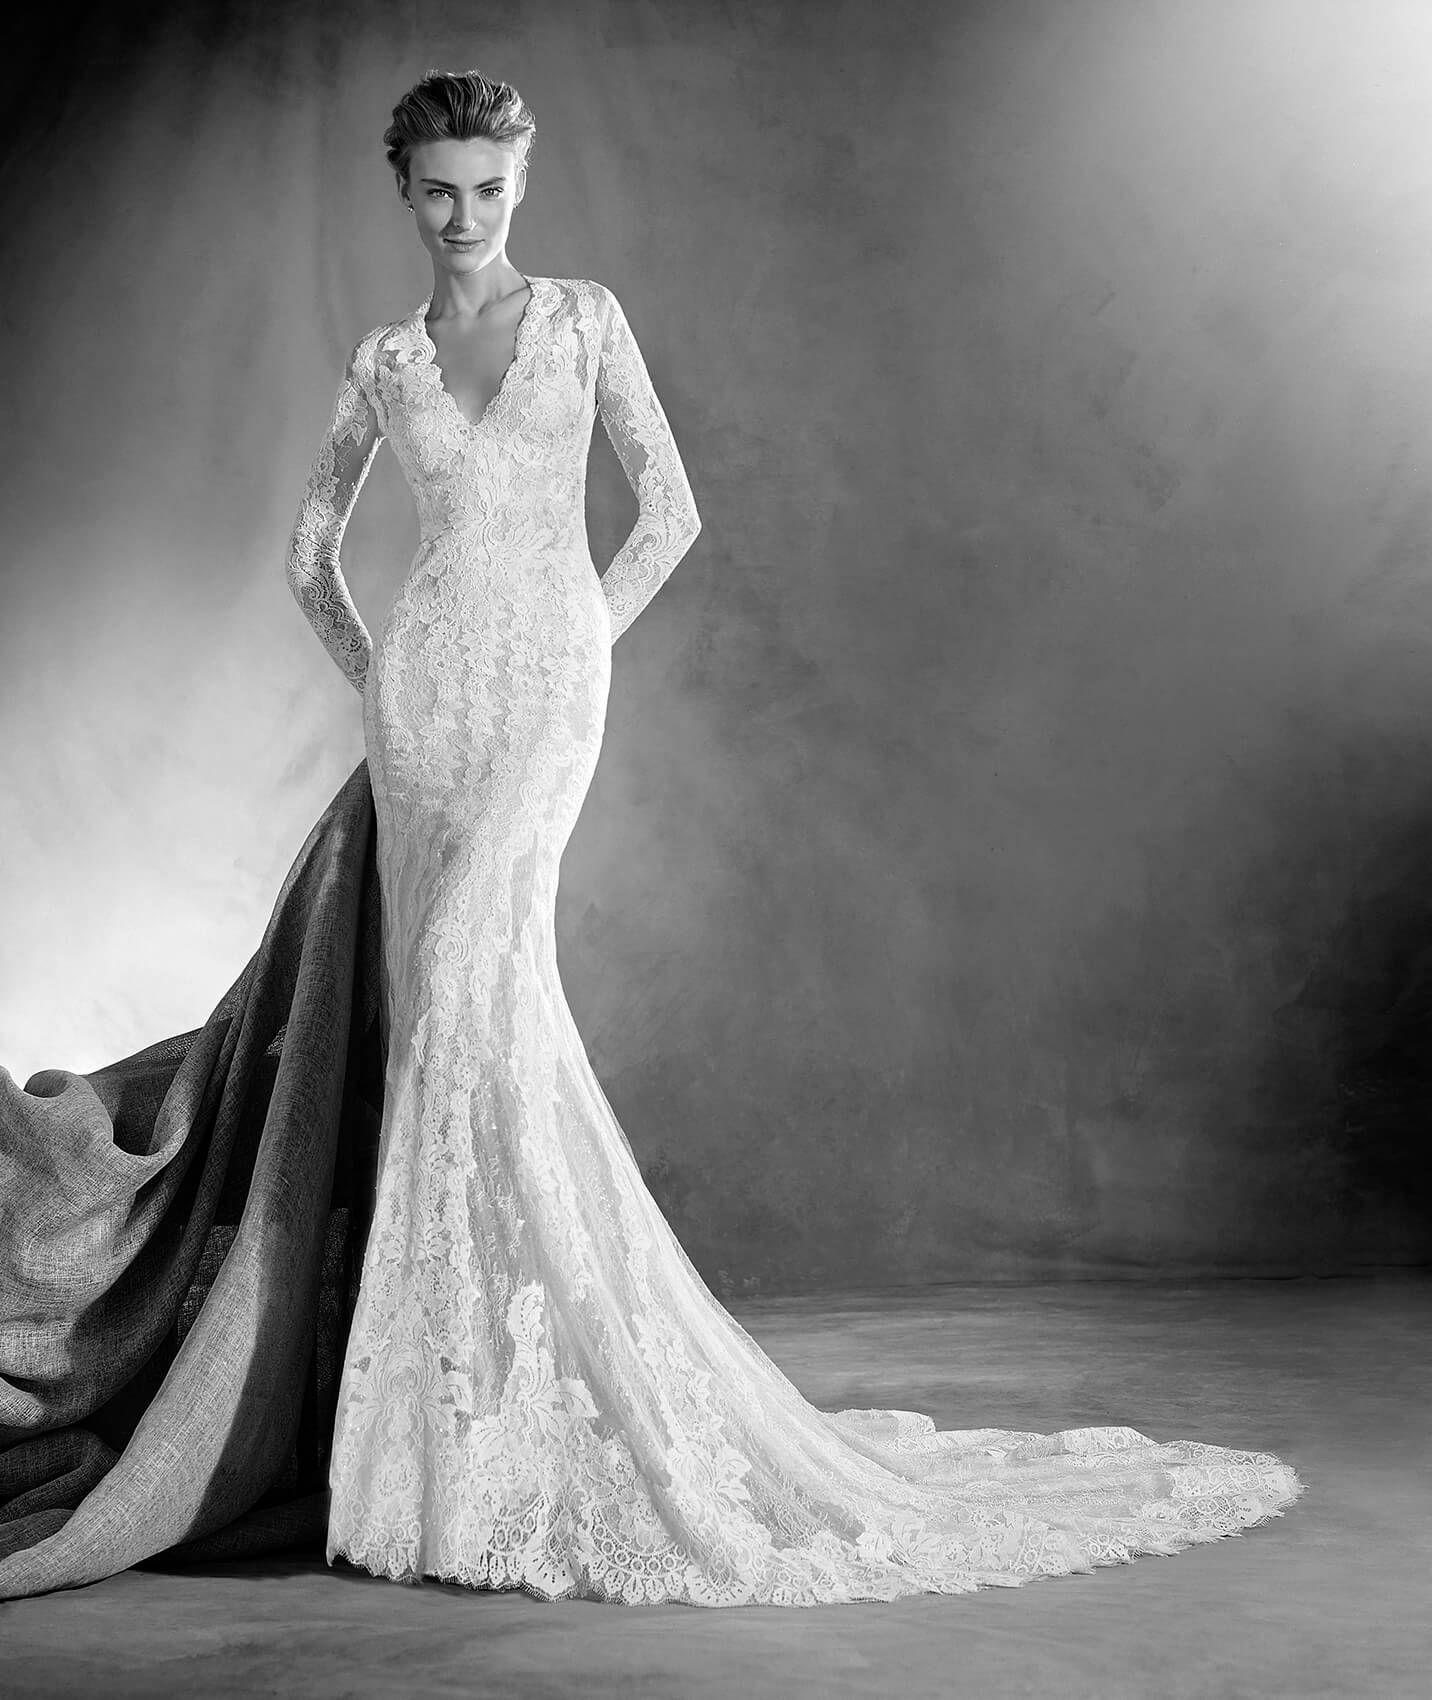 Pin For Later If Kates Your Bridal Icon These Wedding Dresses Are You Pronovias Elva Mermaid Dress Price Upon Request